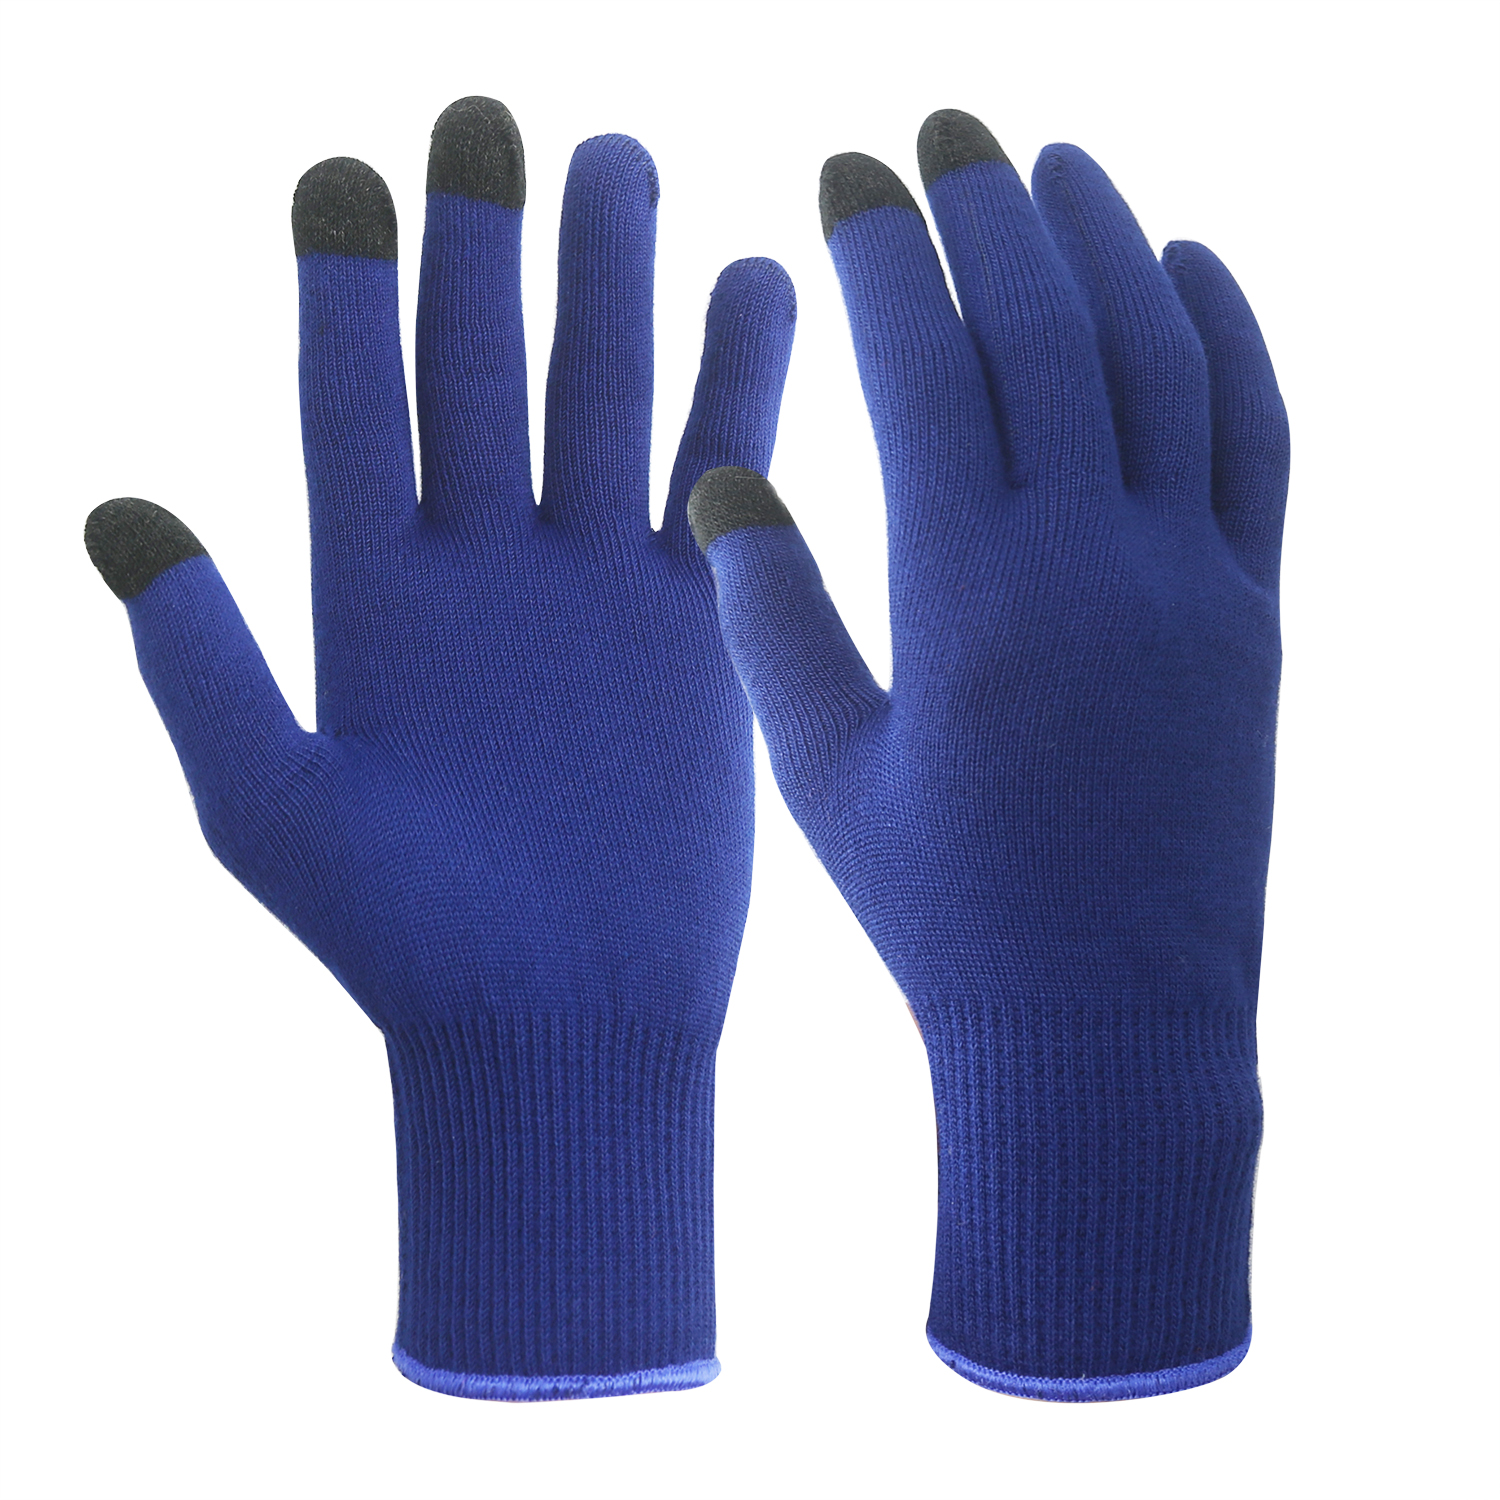 Blue Thermolite Yarn Gloves with Touch Screen Finger/TYG-002-BT